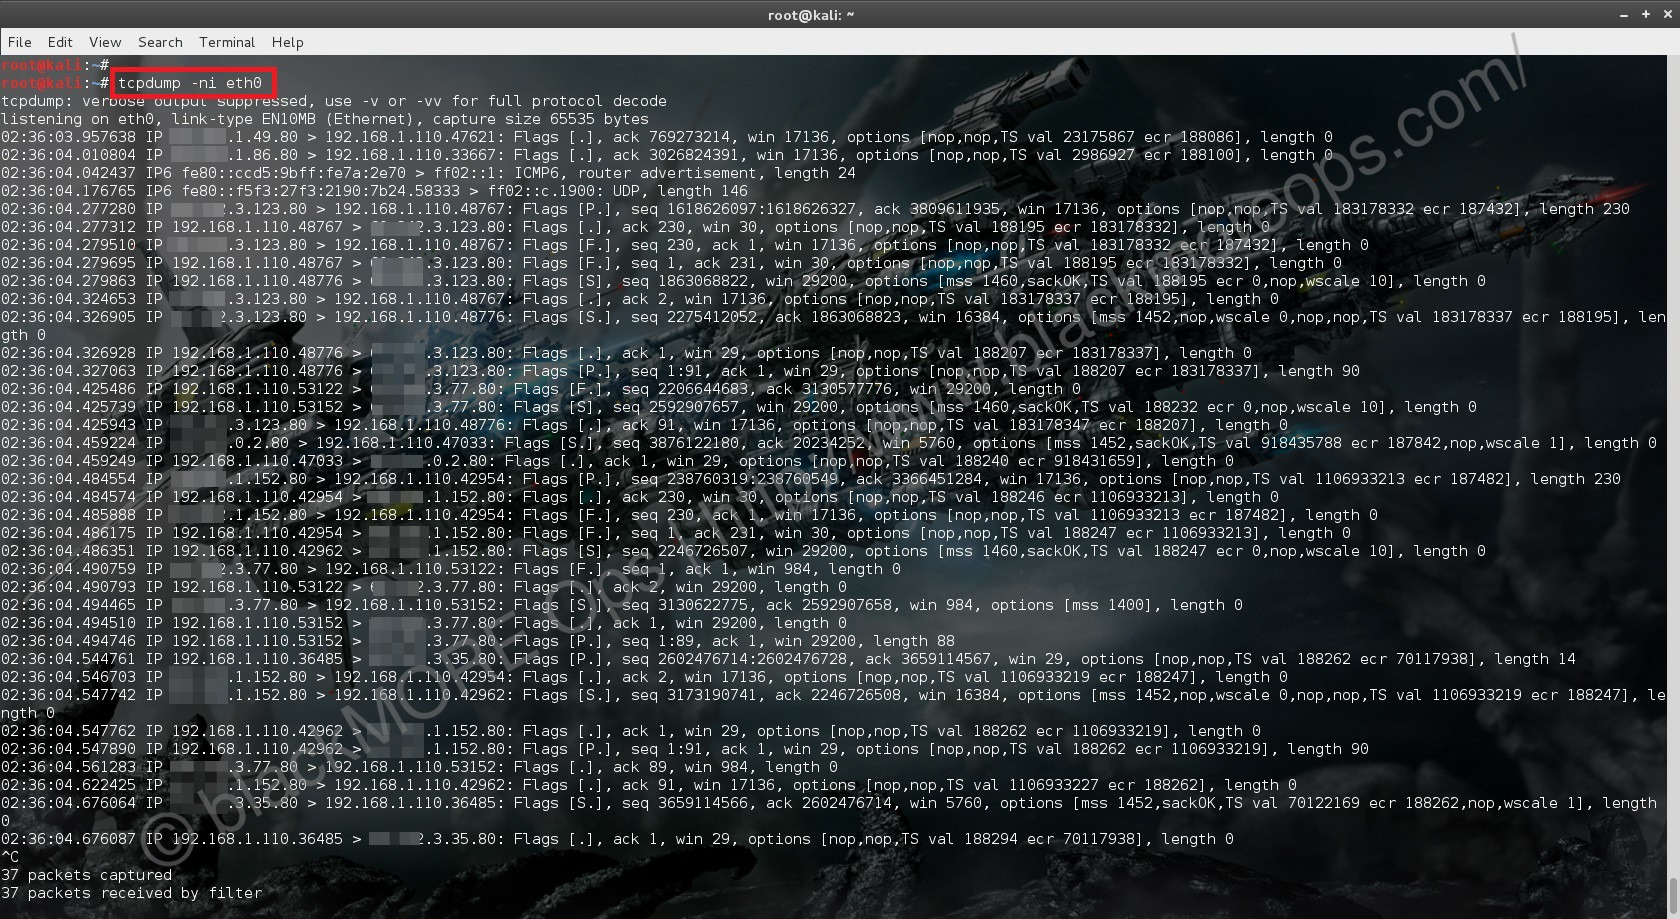 remote-router-hack-dsl-adsl-routers-hack-using-nmap-on-kali-linux-blackmore-ops-3